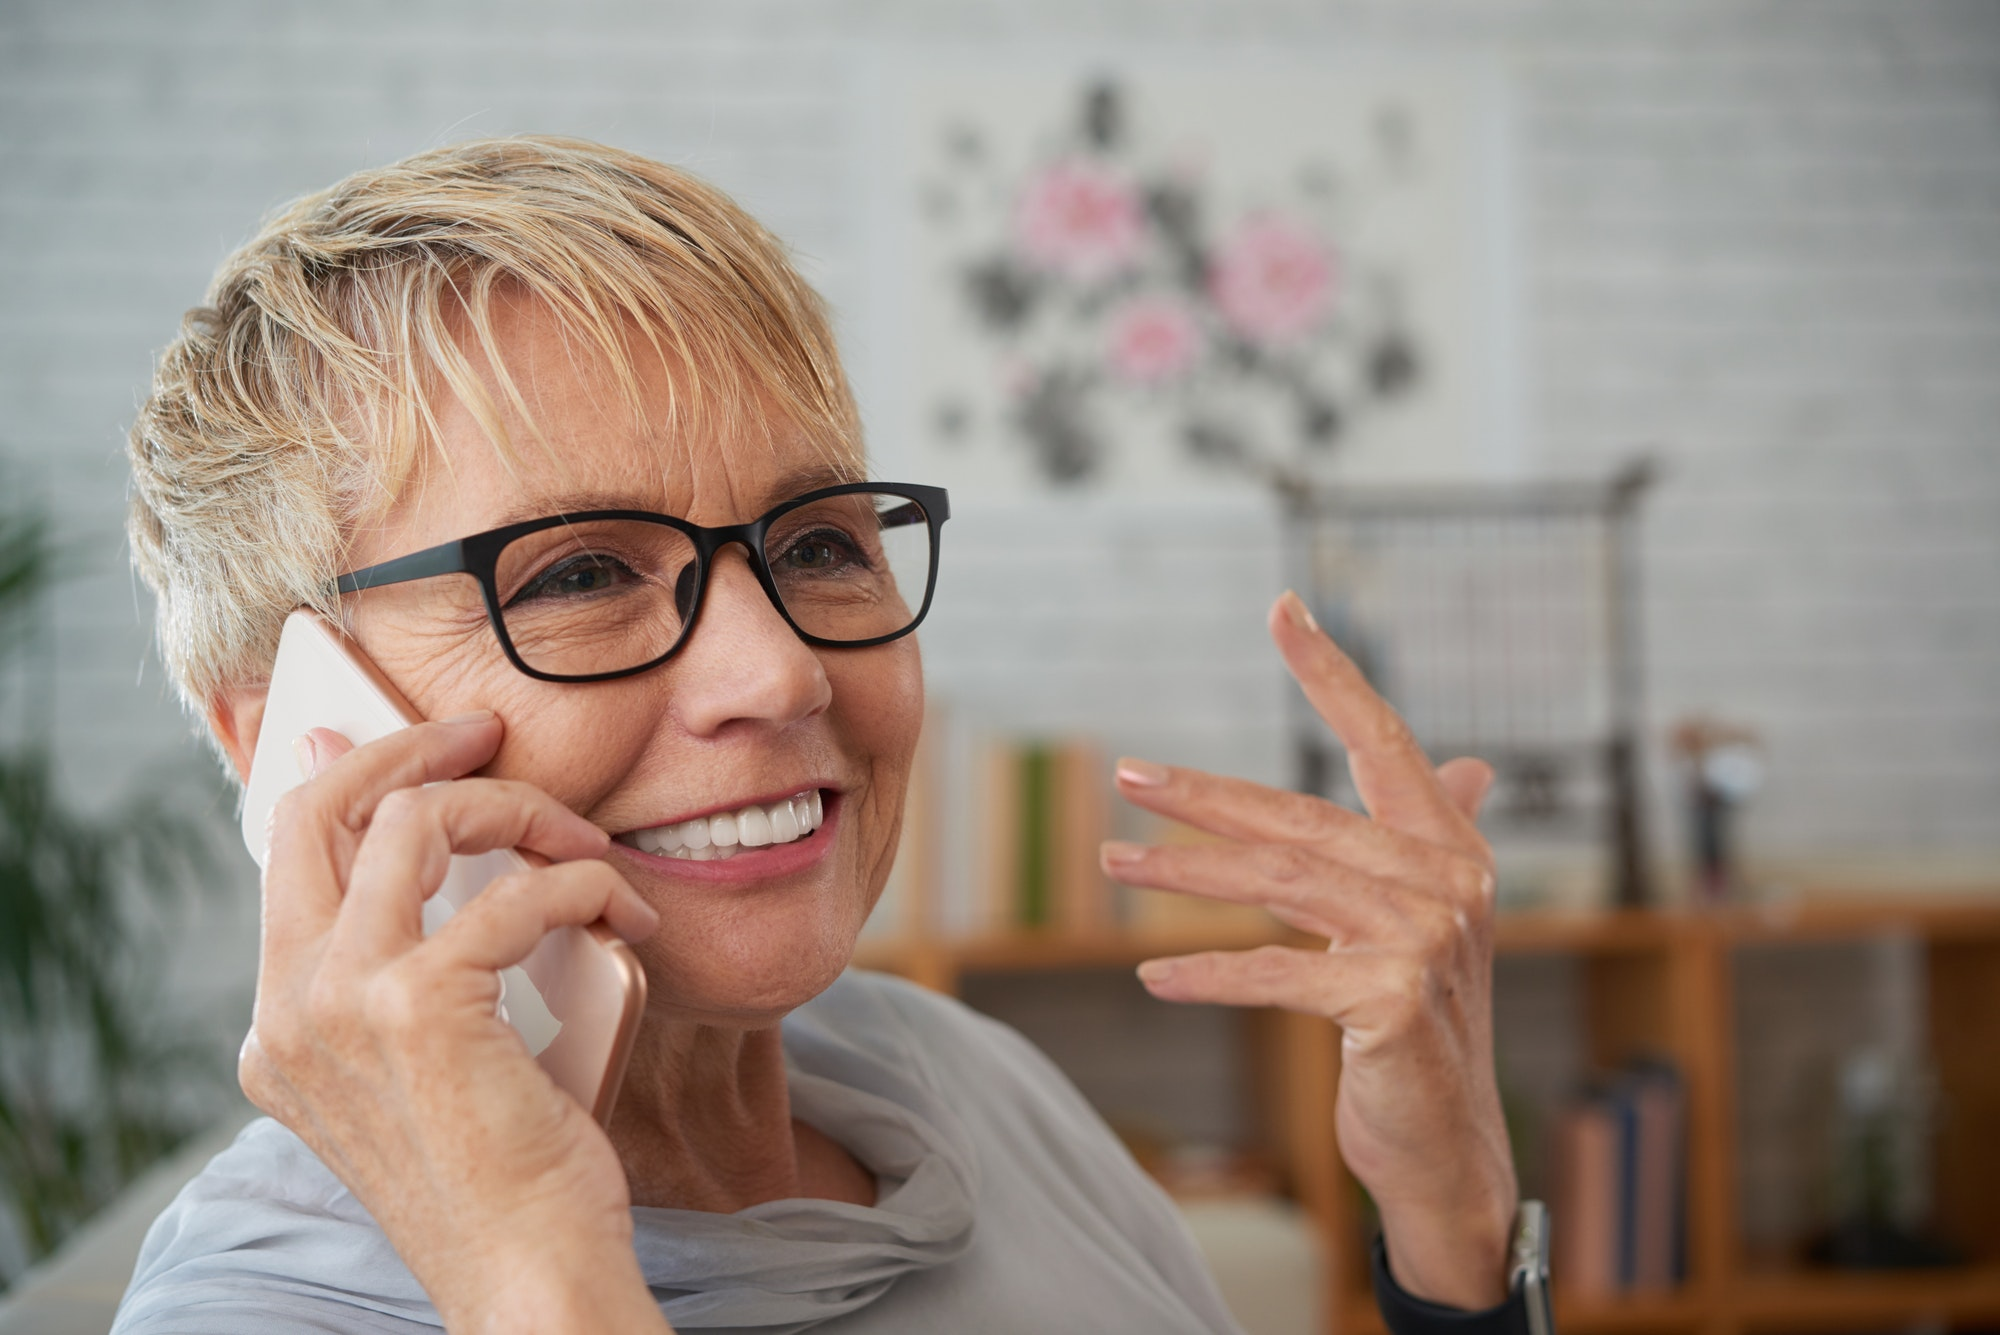 Smiling old woman talking on phone